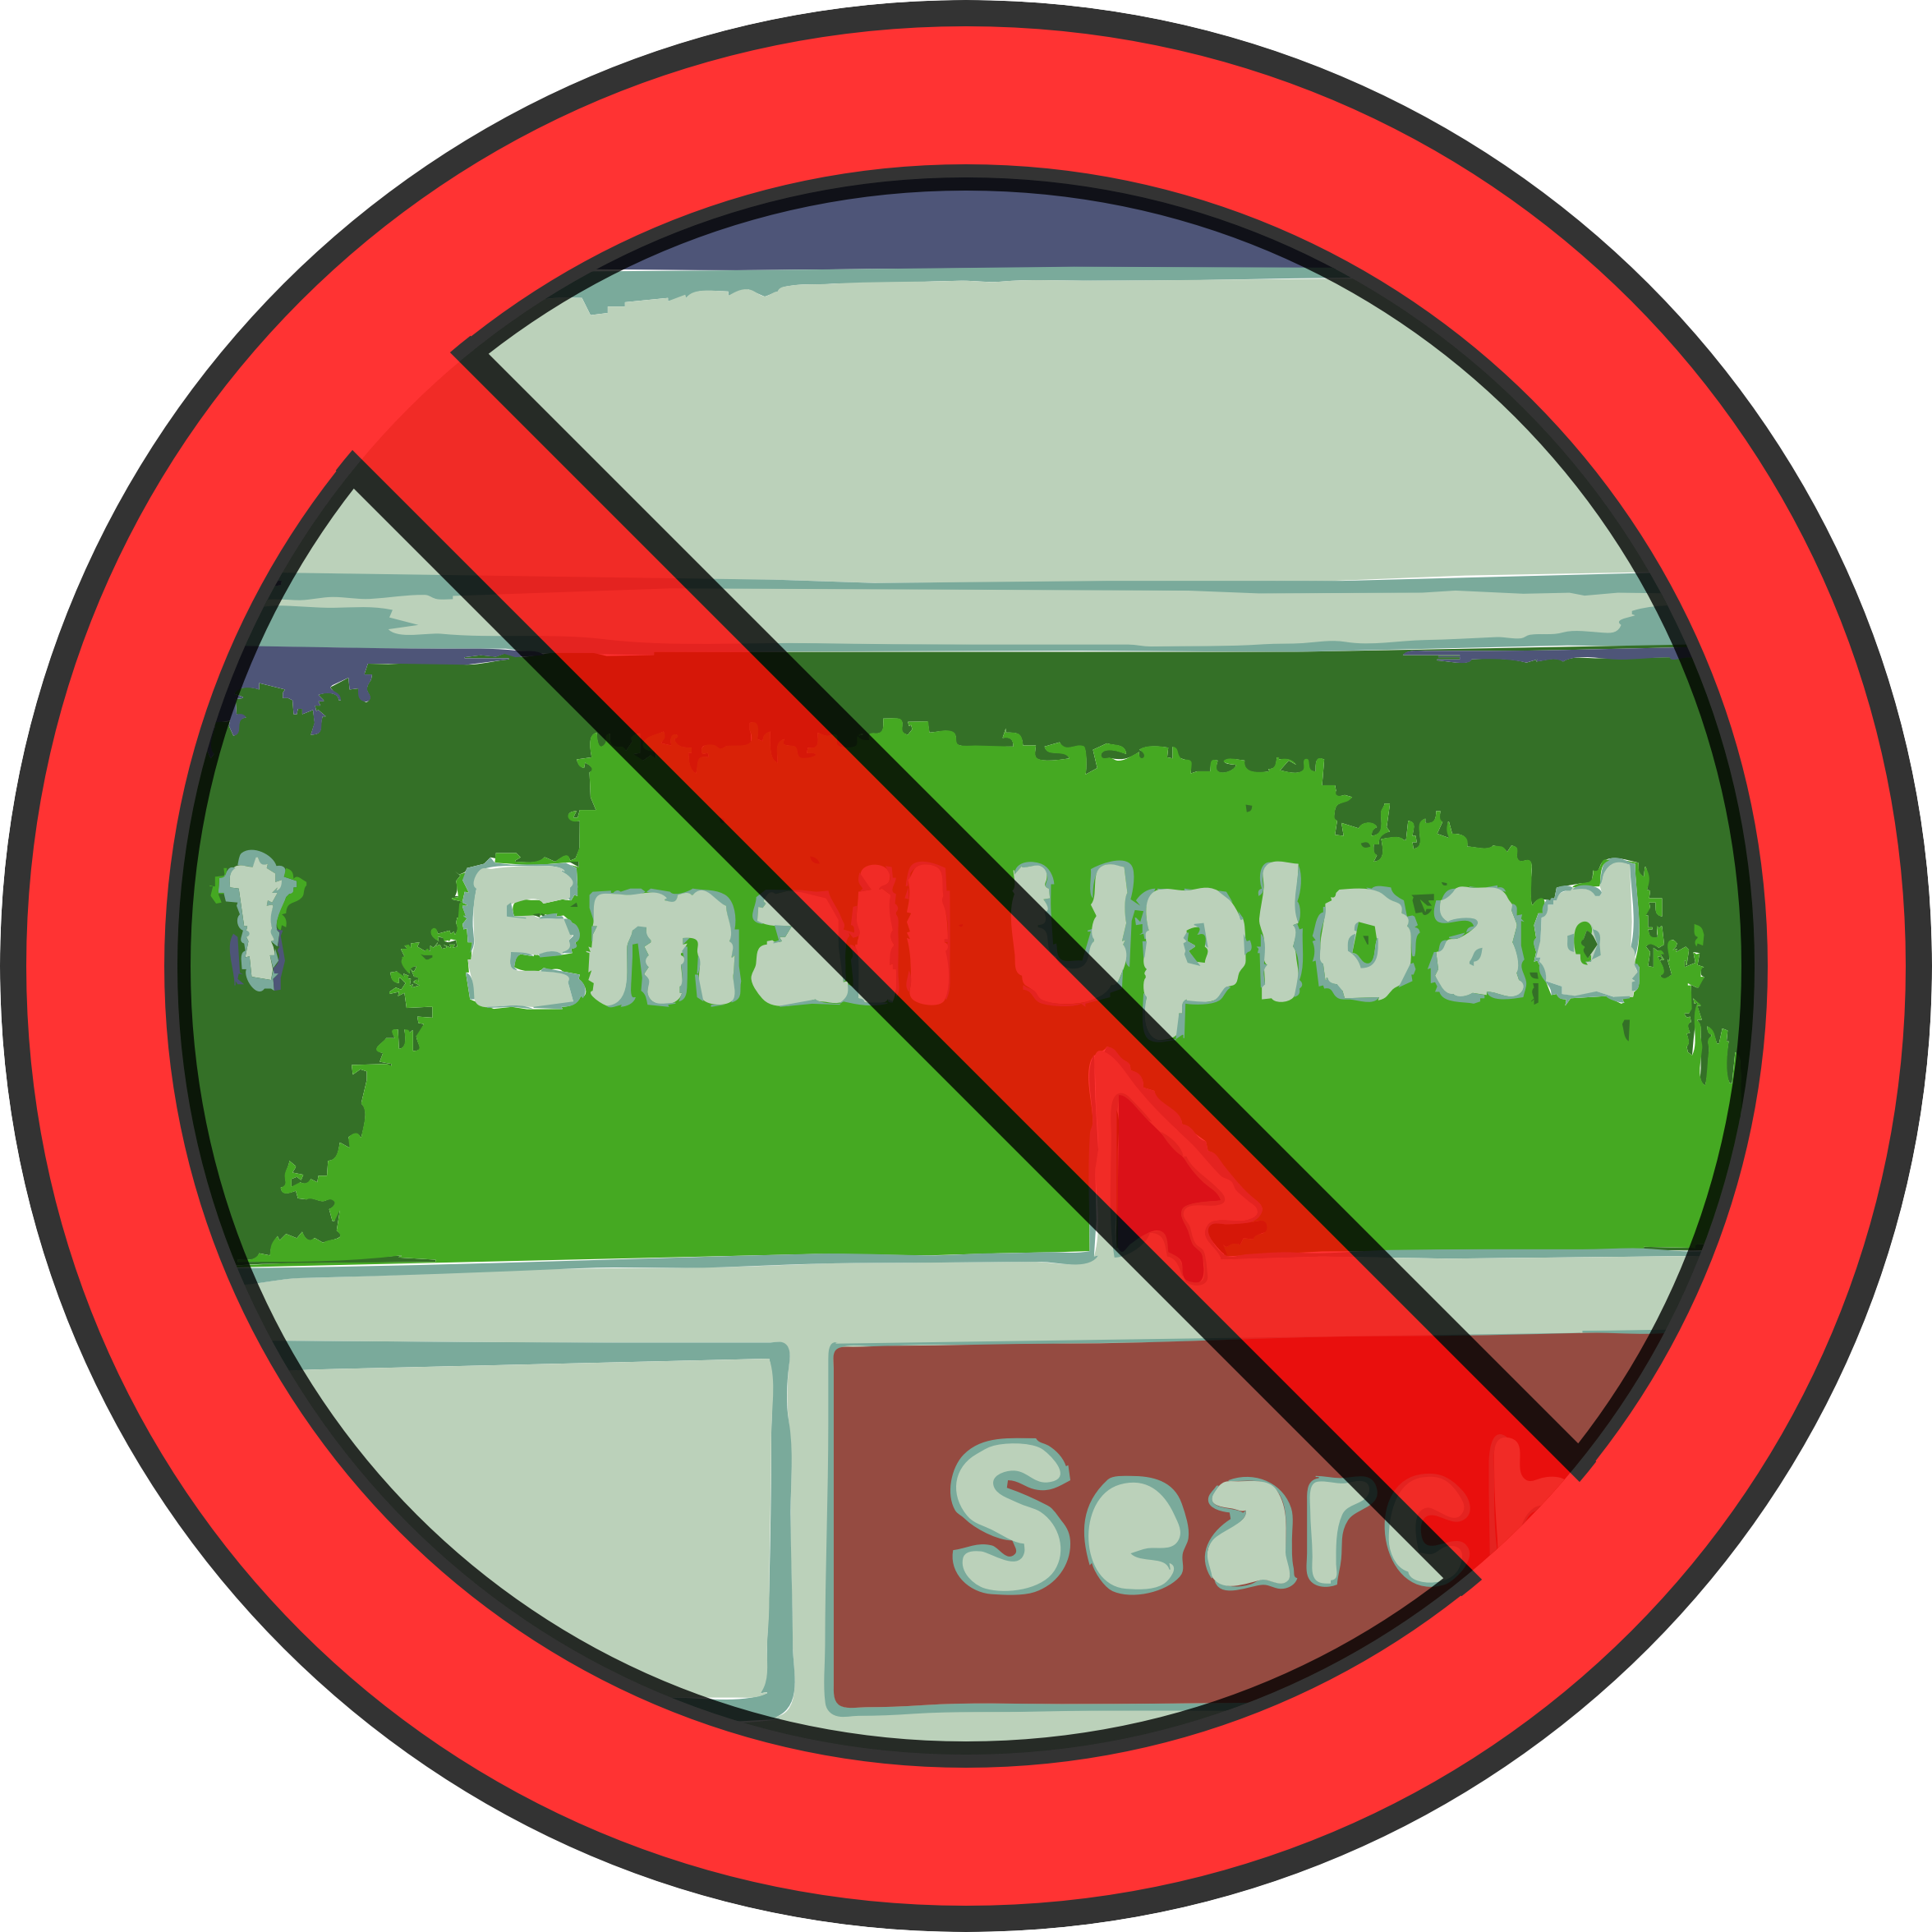 No Email Uploads by JayNick